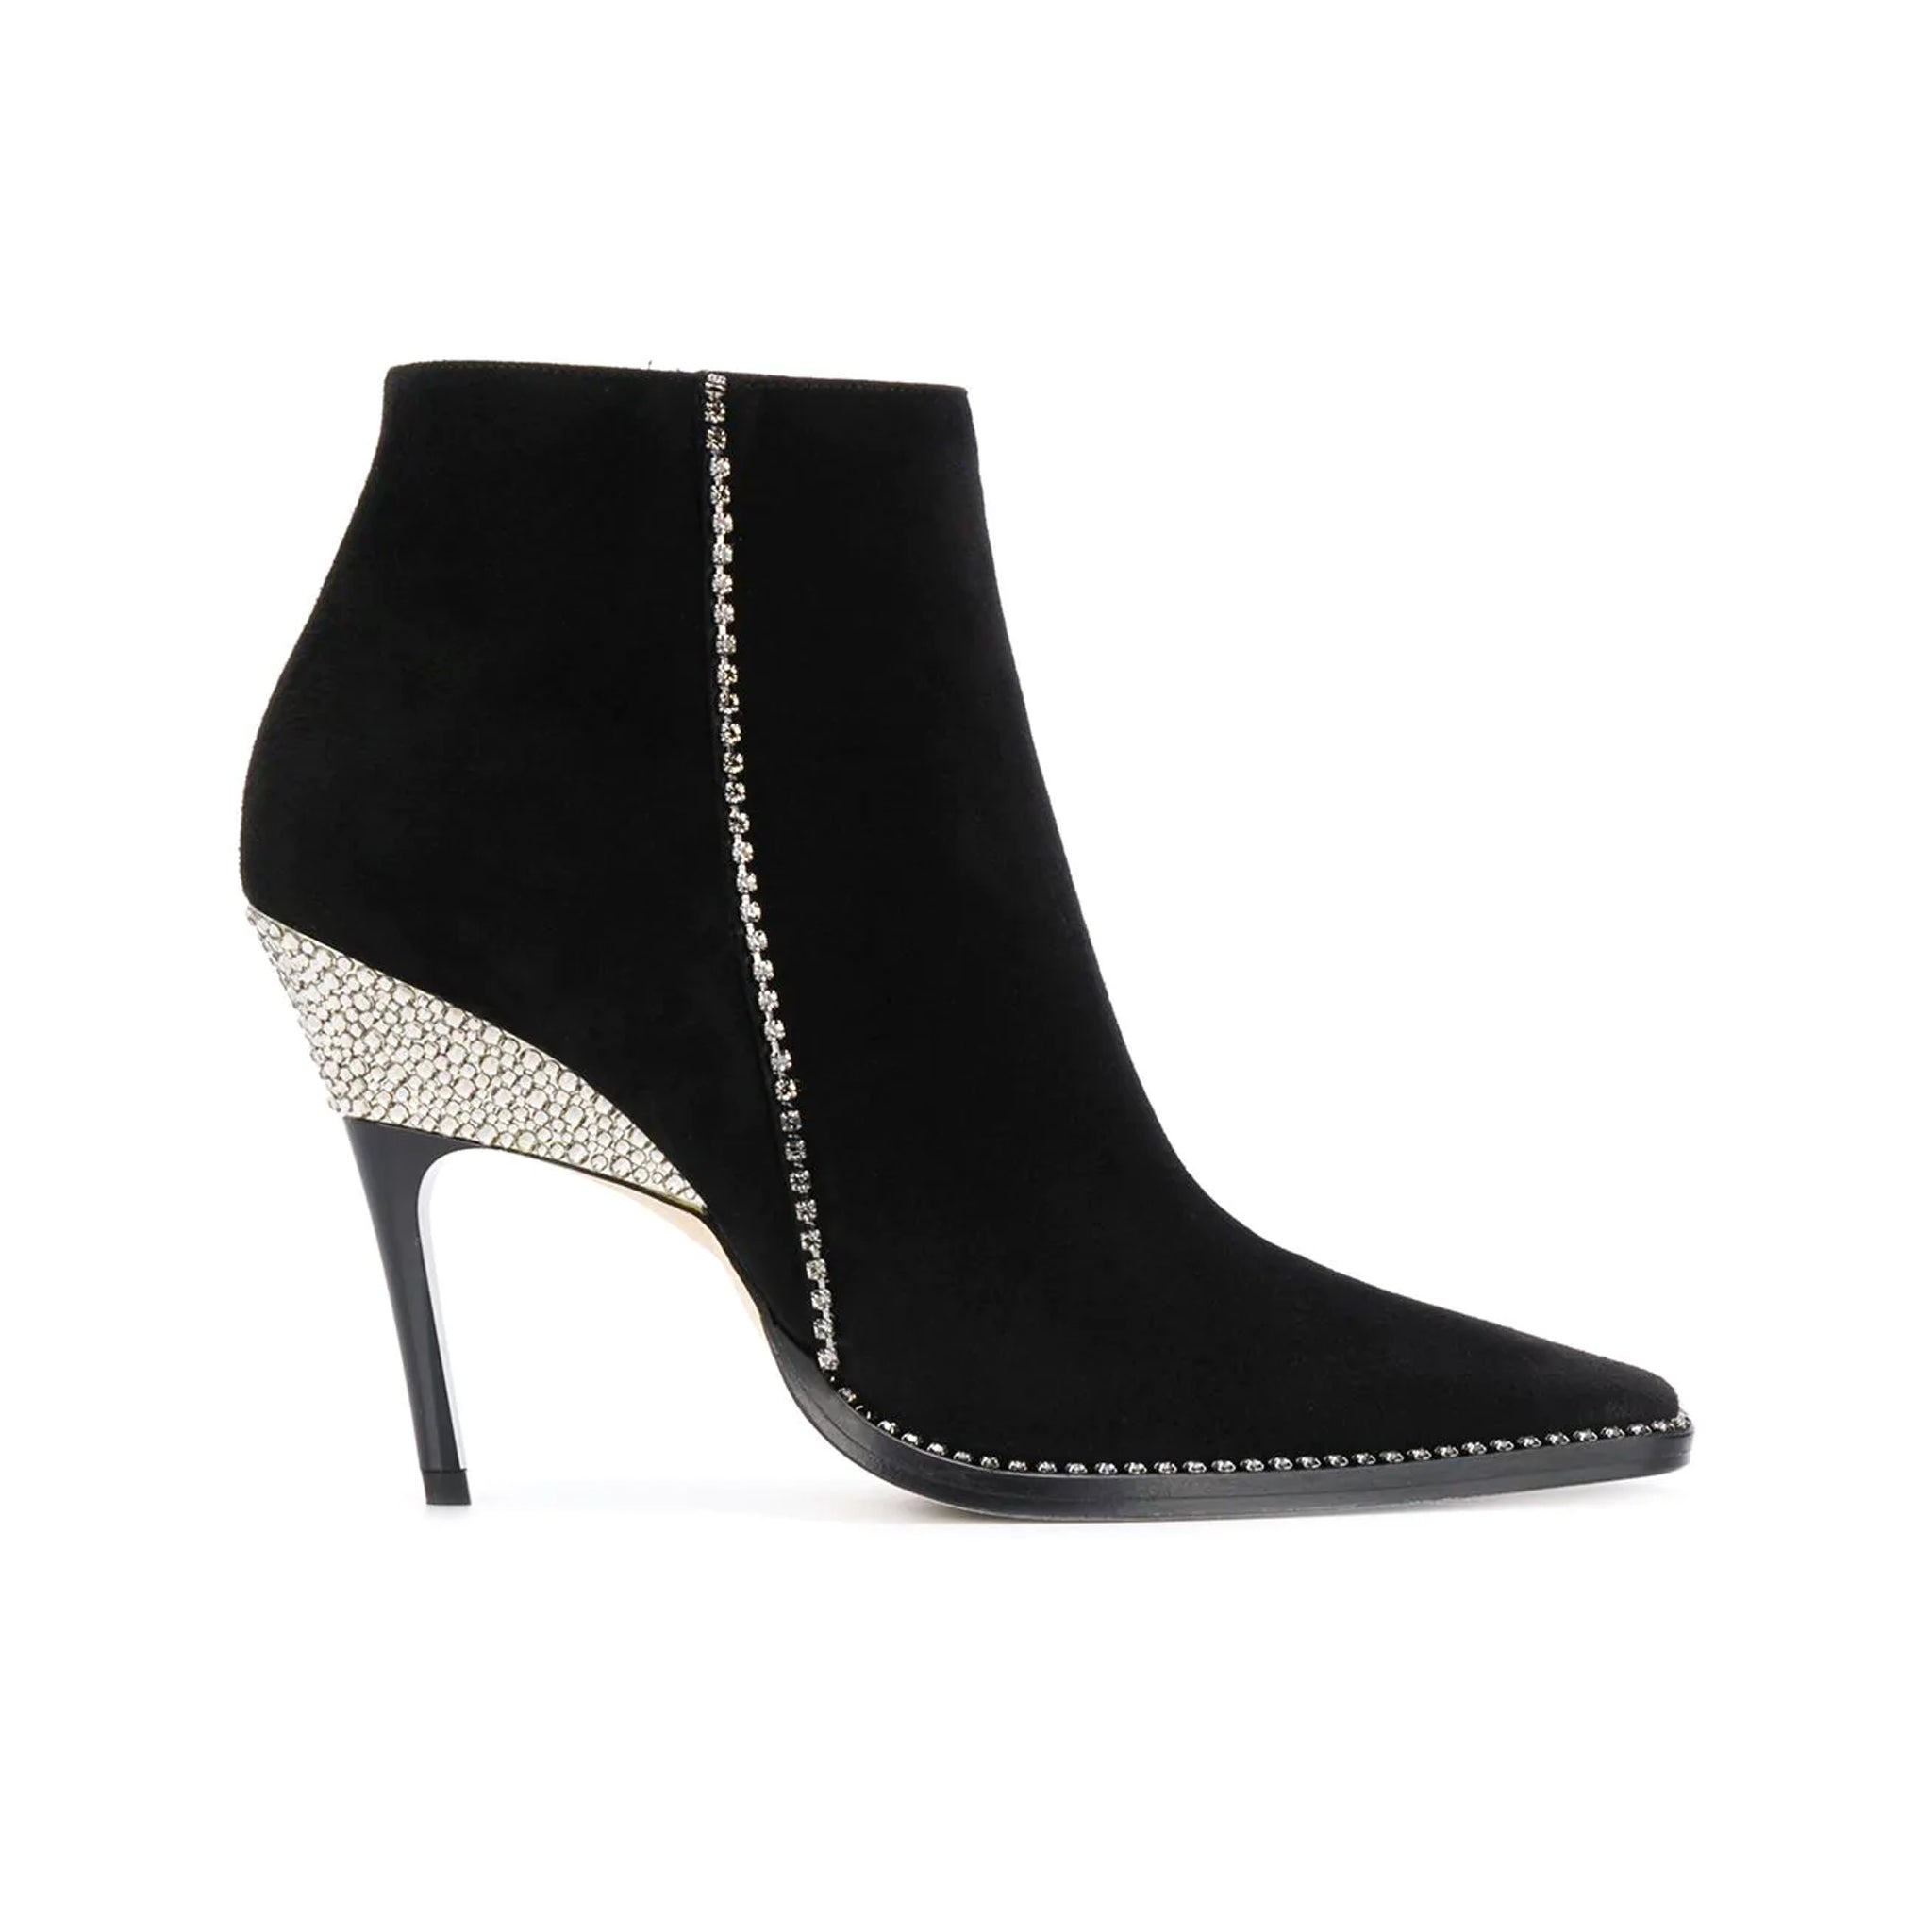 Jimmy Choo Brecken 100 Suede Booties